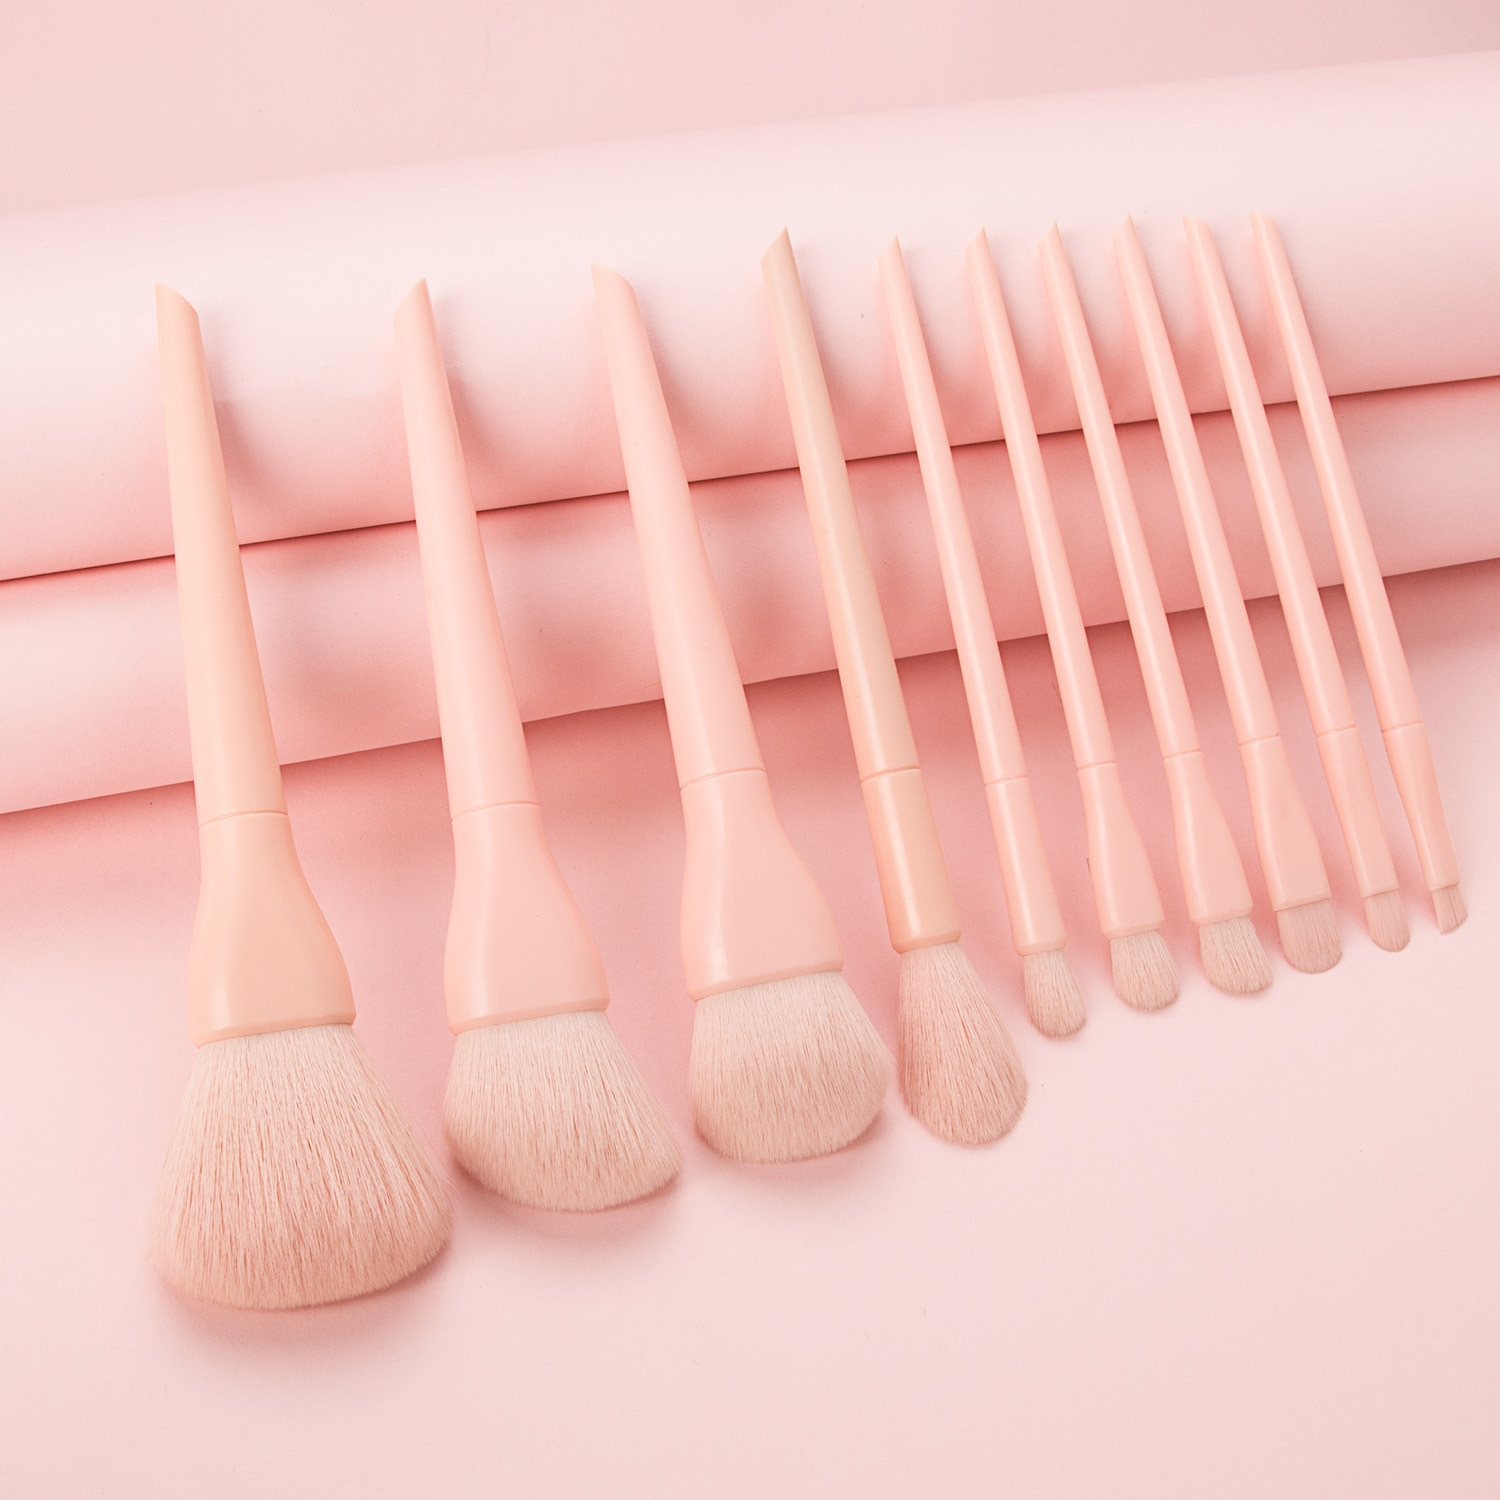 10pcs Makeup Brush Set 2021 New Loose Powder Foundation Eyebrow Eyeshadow Blush Brushes Make Up Tools Kit with Bag Maquillaje